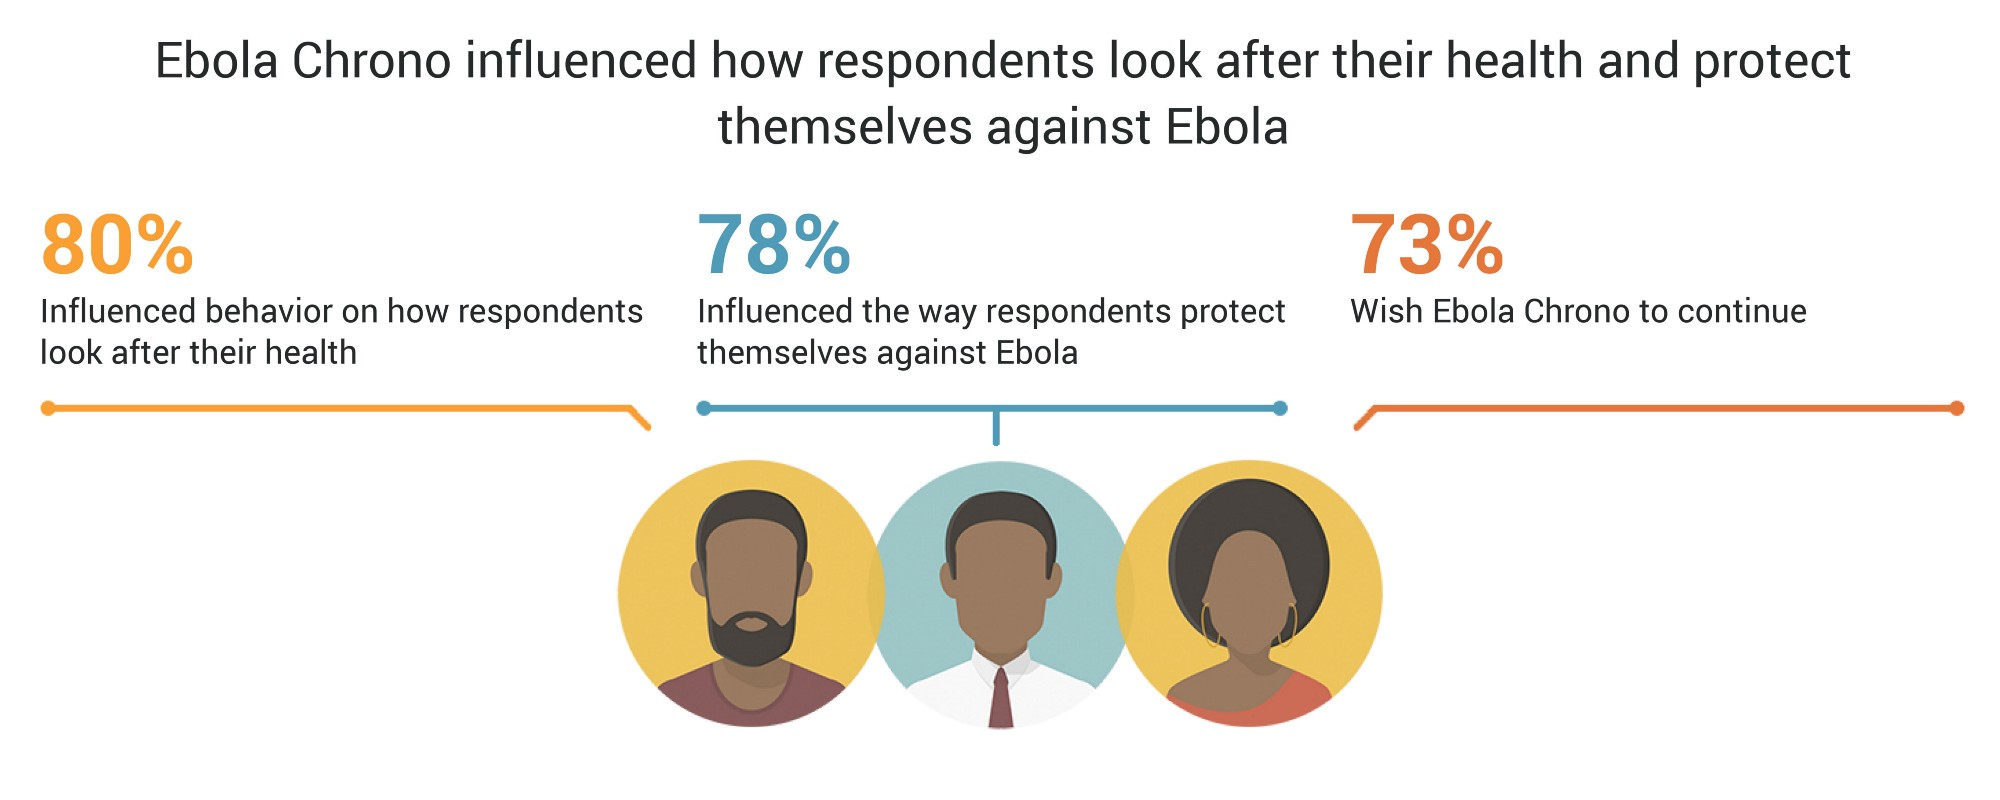 Infographic showing that Ebola Chrono influenced how respondents look after their health